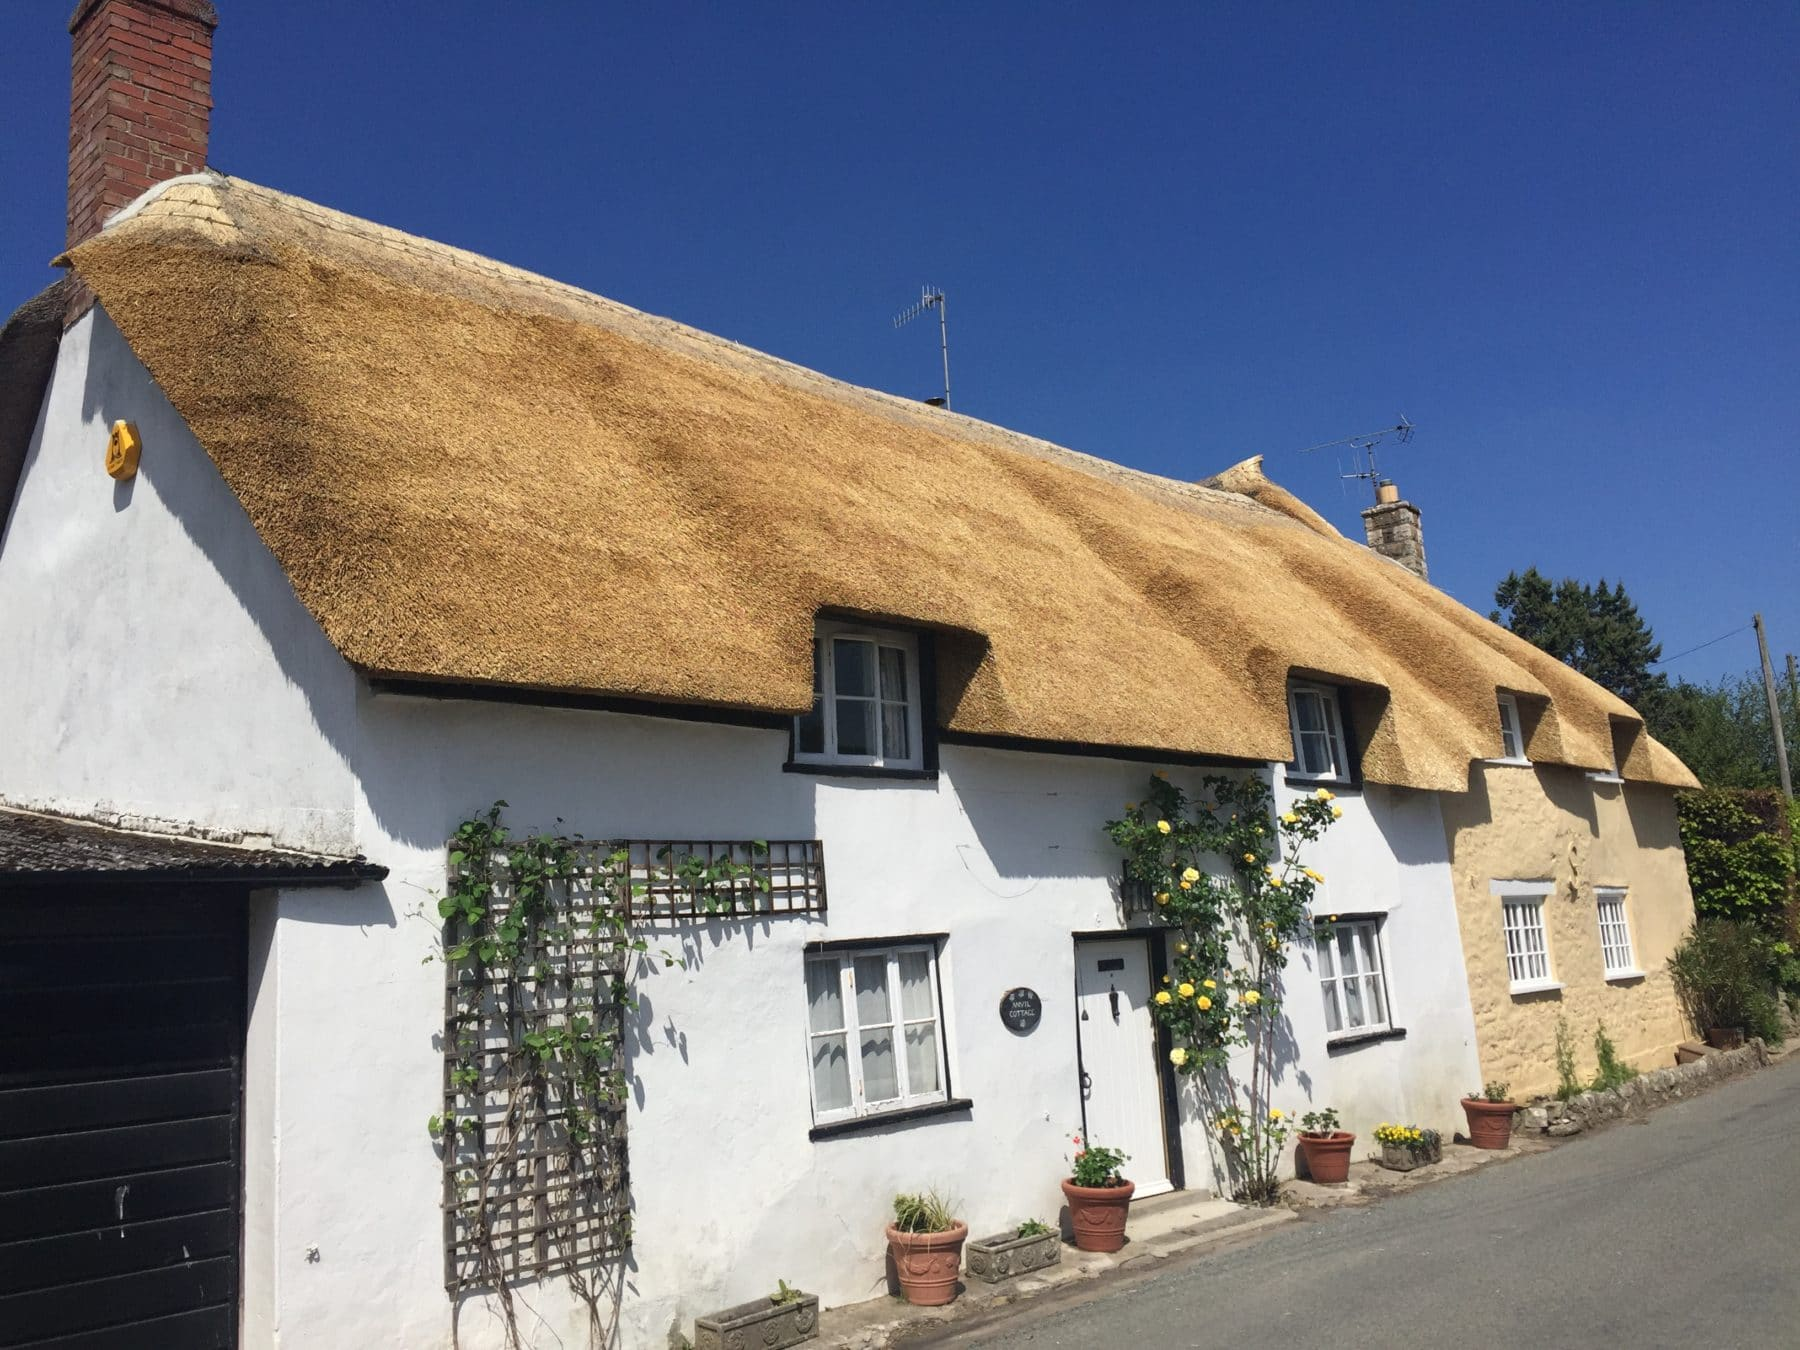 Lovely Front Side View of a Thatched Roof